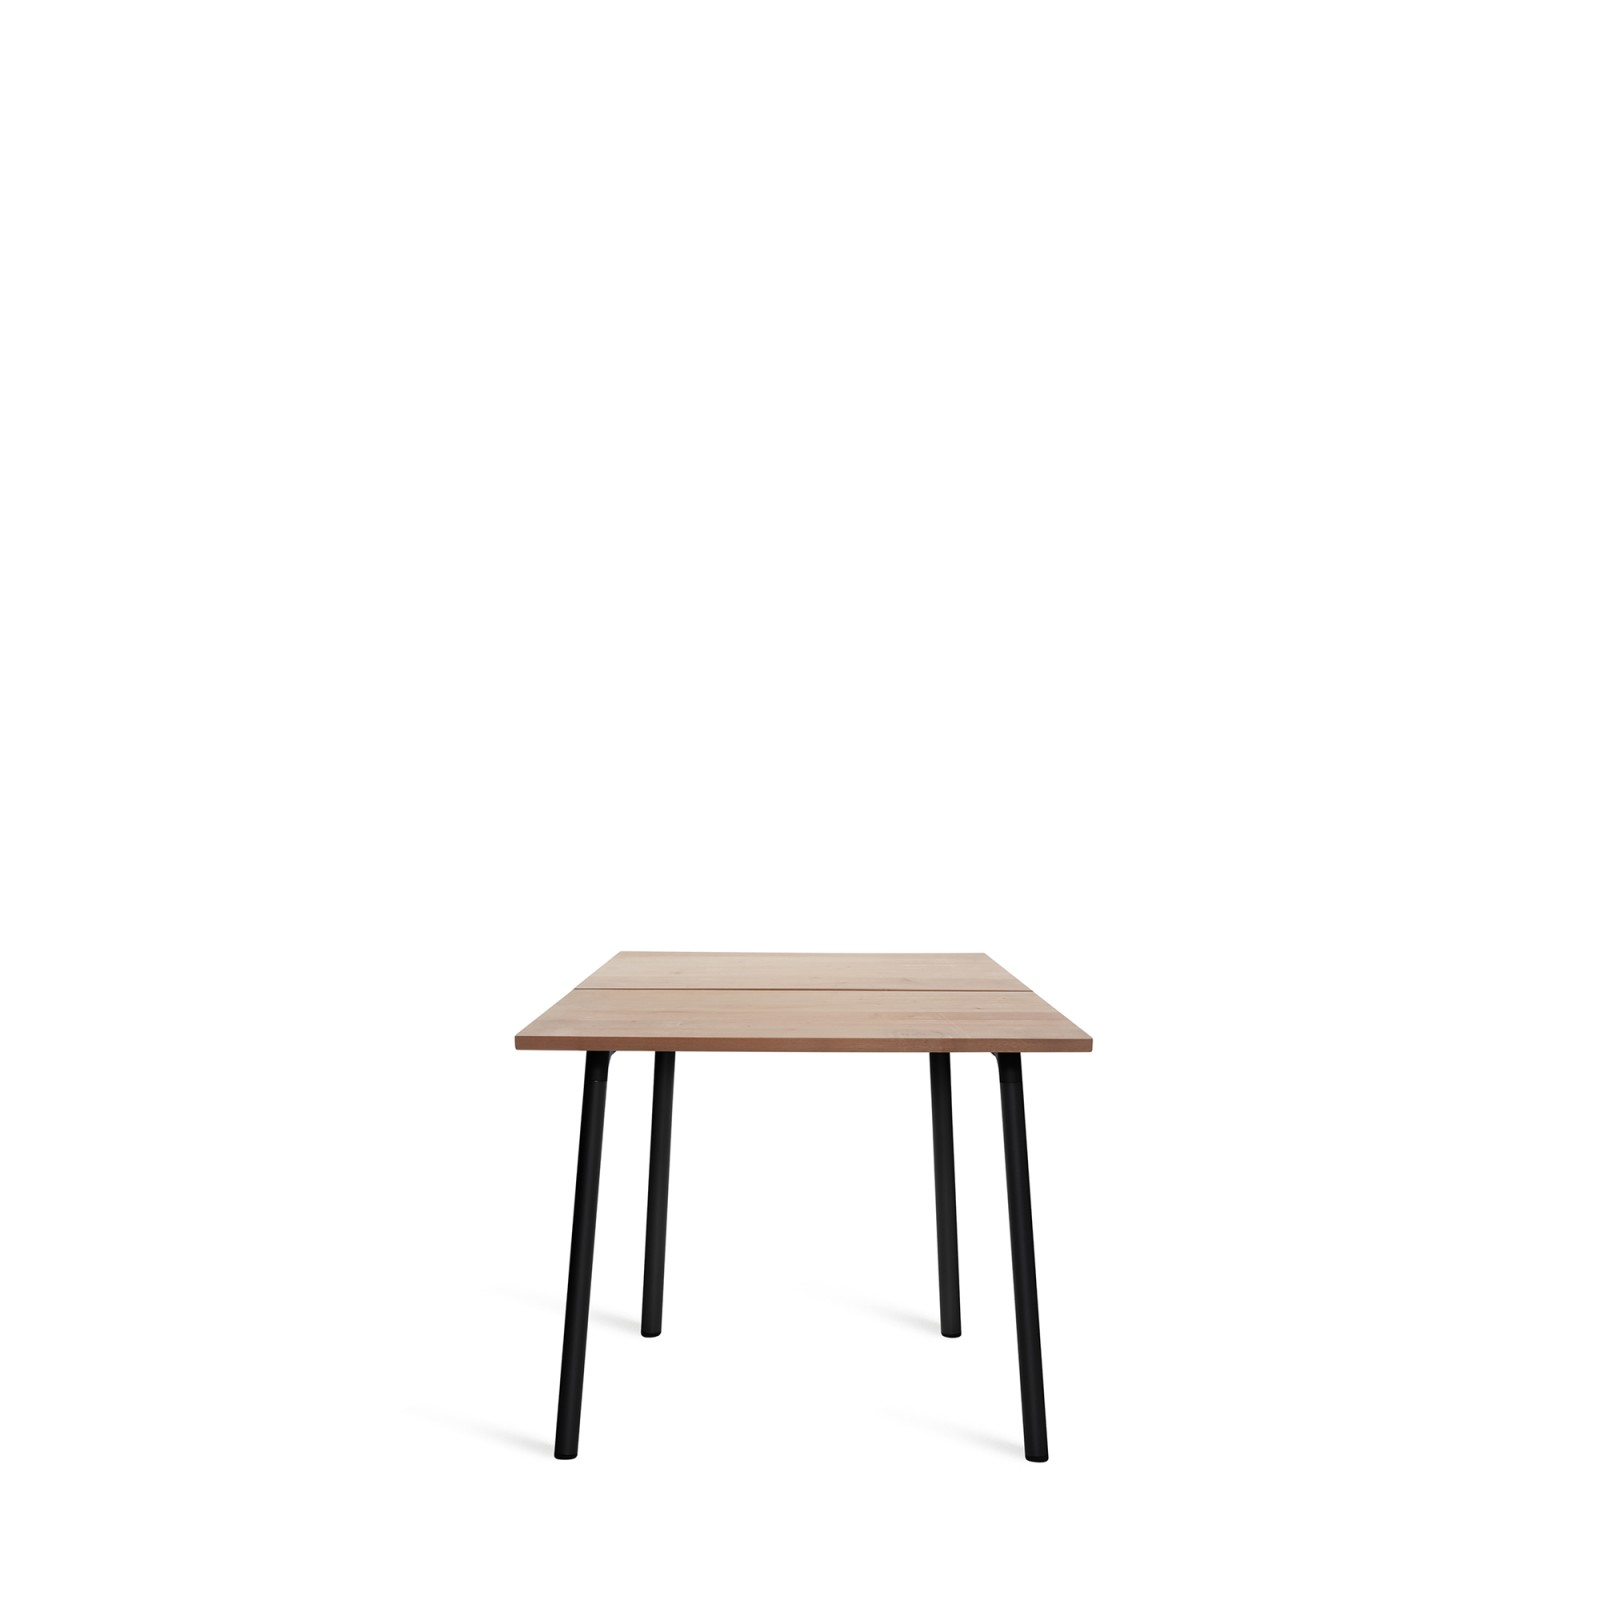 Run Dining Table 83cm, Black, Cedar Top